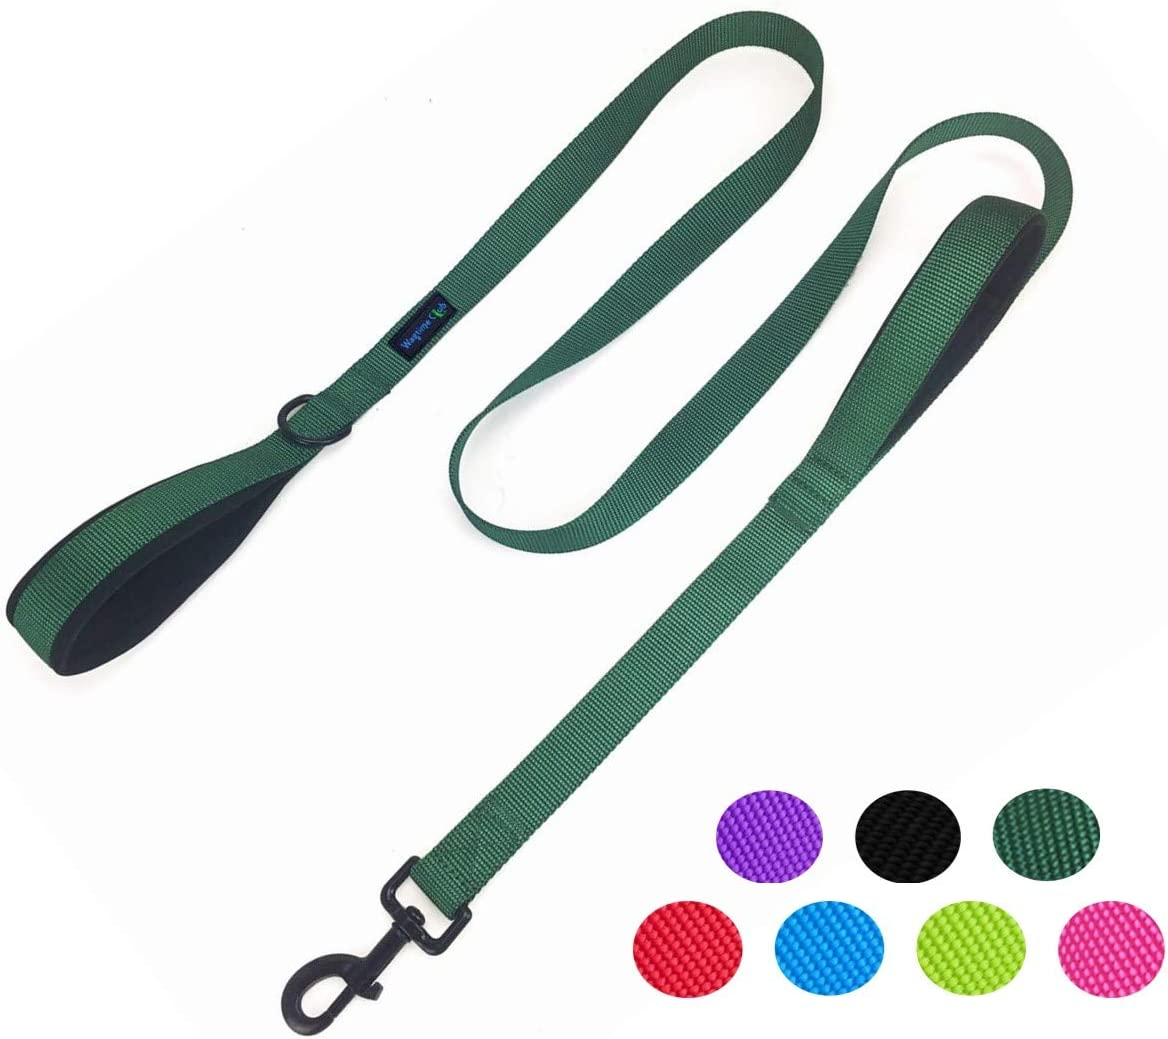 Wagtime Club Soft &Thick Dual Handle 6FT Dog Leash, Premium Strength Double Padded Handles - Vibrant Colors with Reflective Option